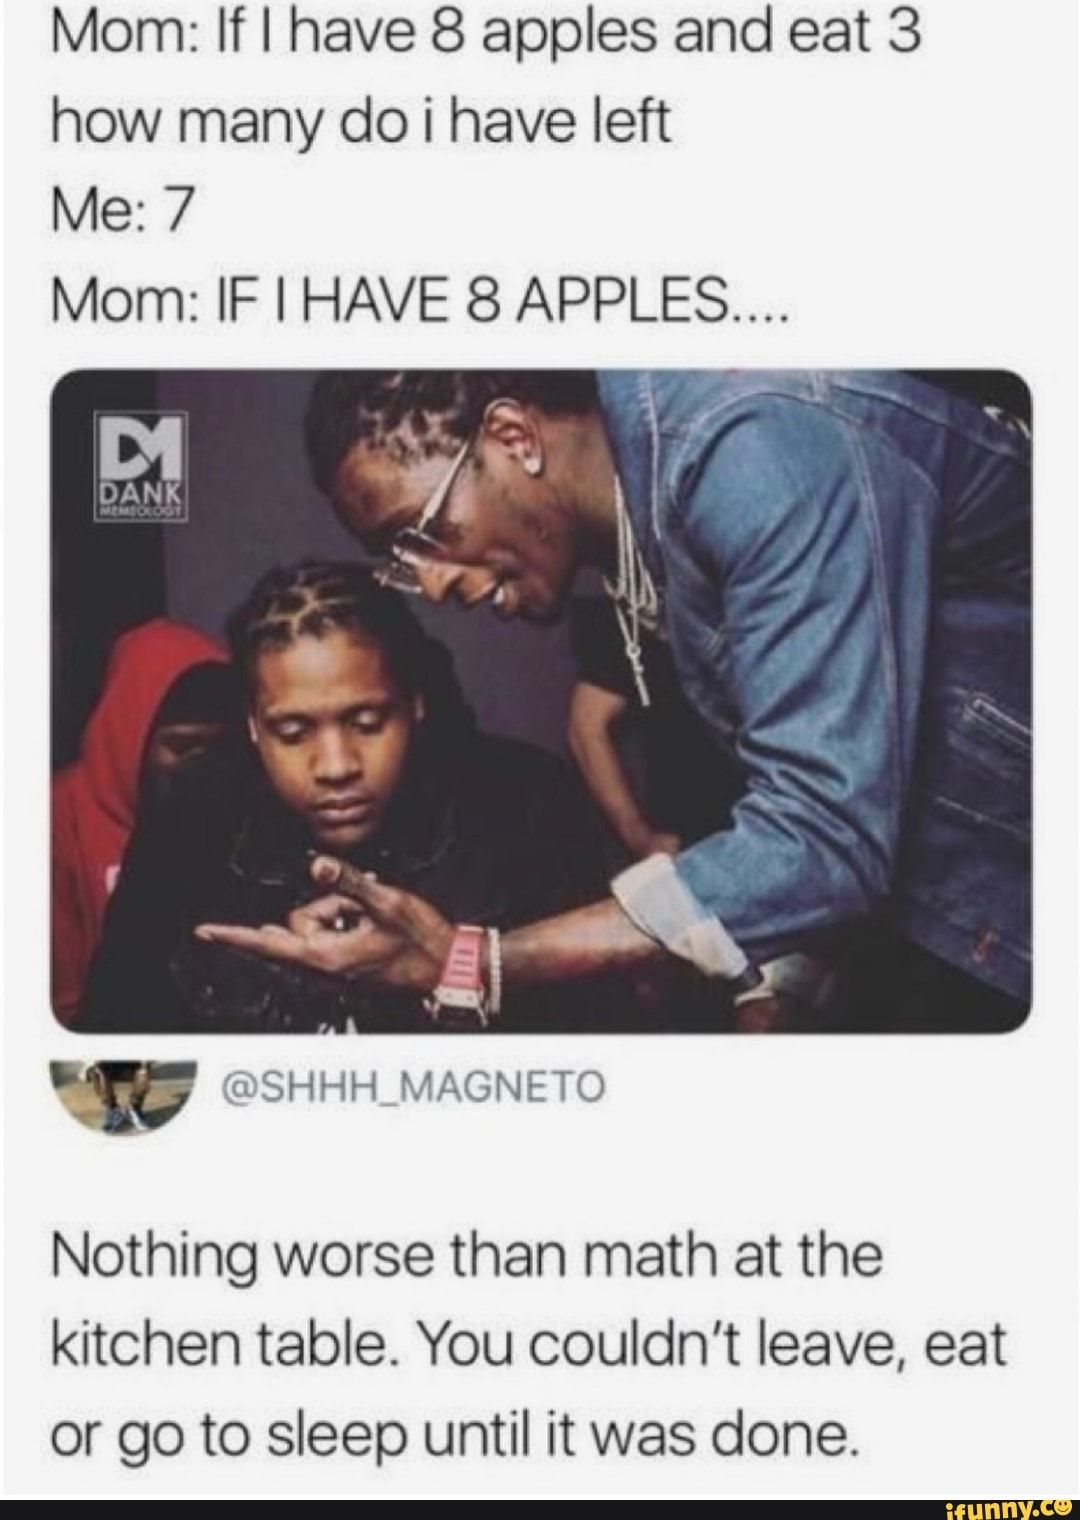 Mom If I Have 8 Apples And Eat 3 How Many Do I Have Left Me 7 Mom If I Have 8 Apples Nothing Worse Than Math At The Kitchen Table You